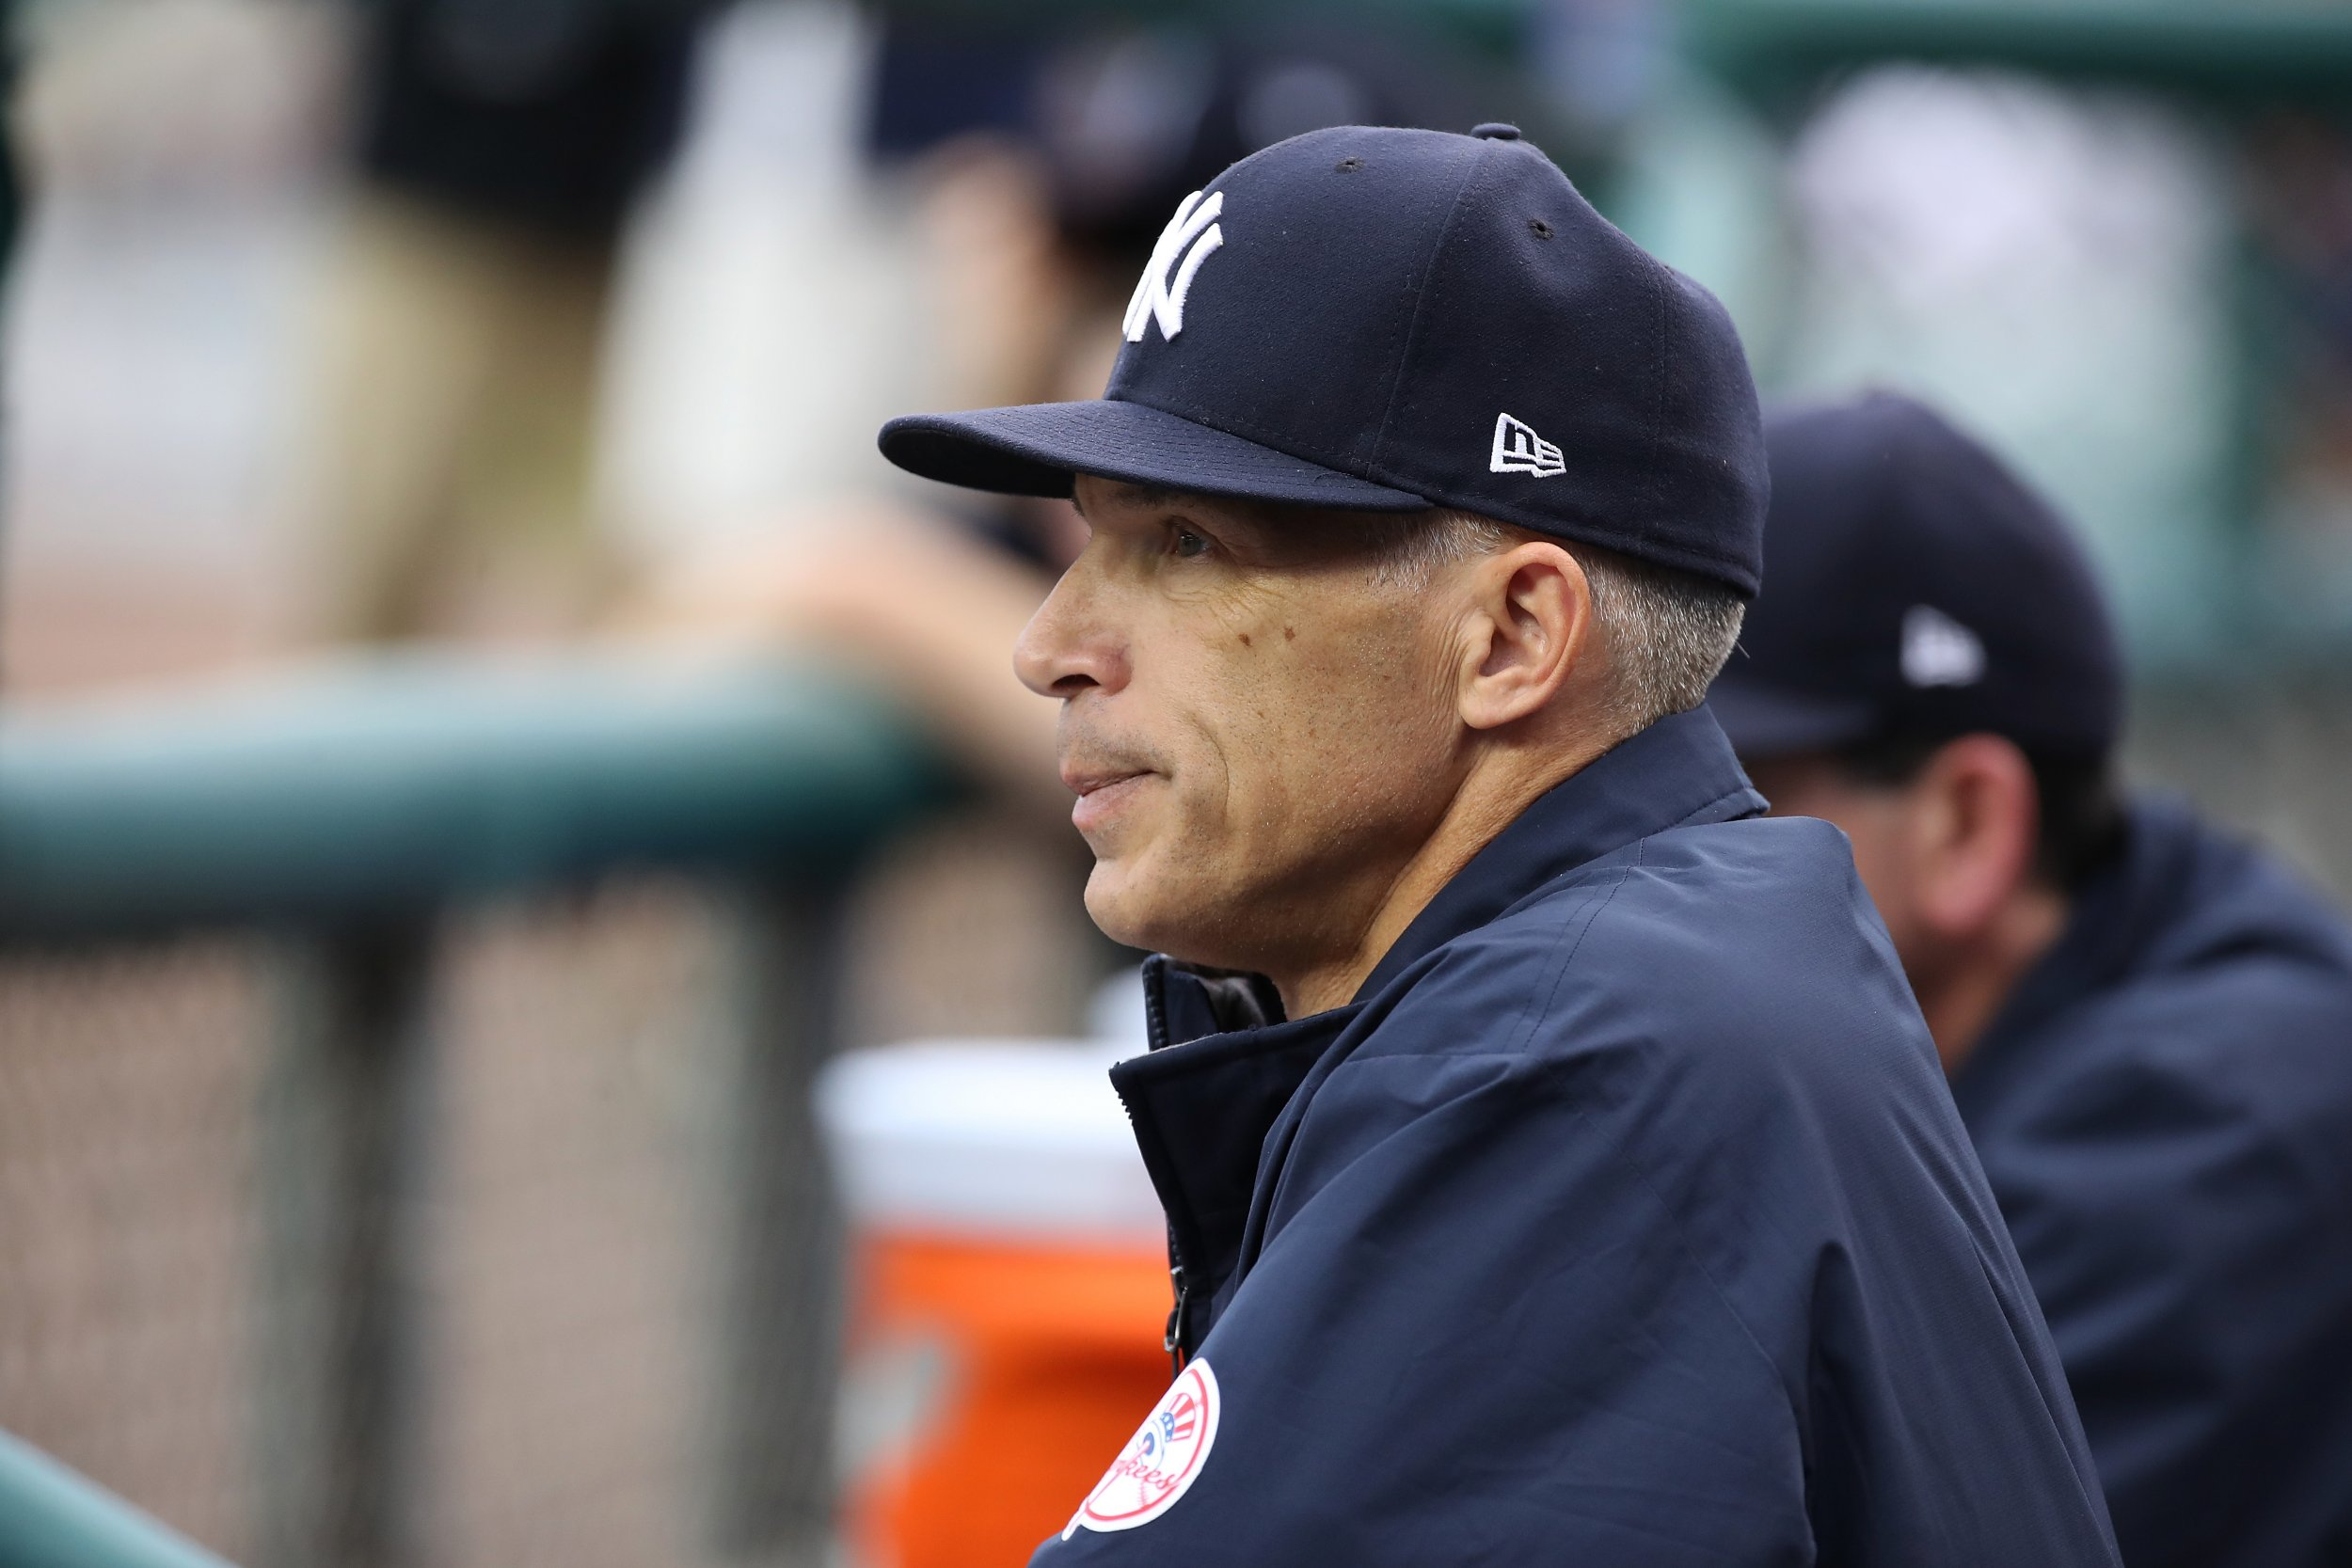 New York Yankees manager Joe Girardi.